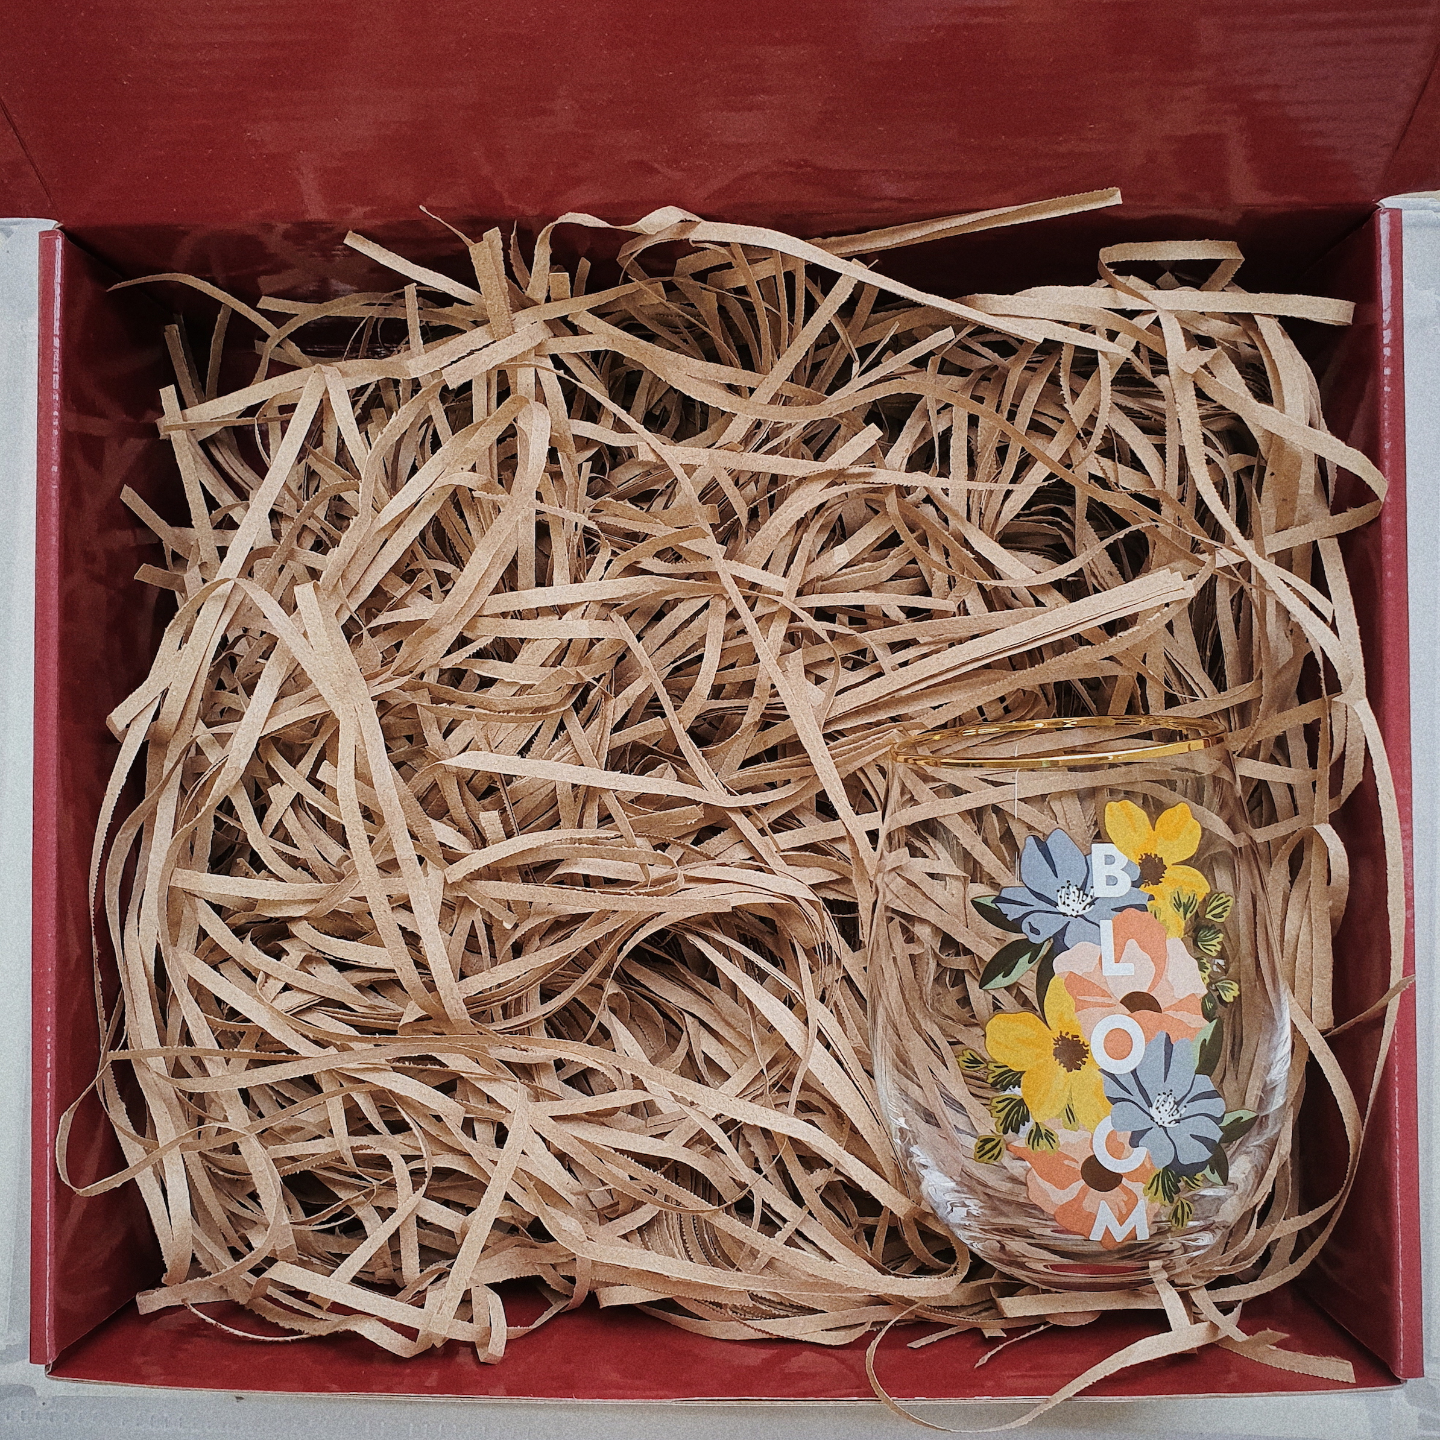 Red gift box filled with brown shredded paper. On the bottom right is a gold rimmed stemless wine glass which says Bloom in caps and is decorated by huge yellow, red and blue flowers.